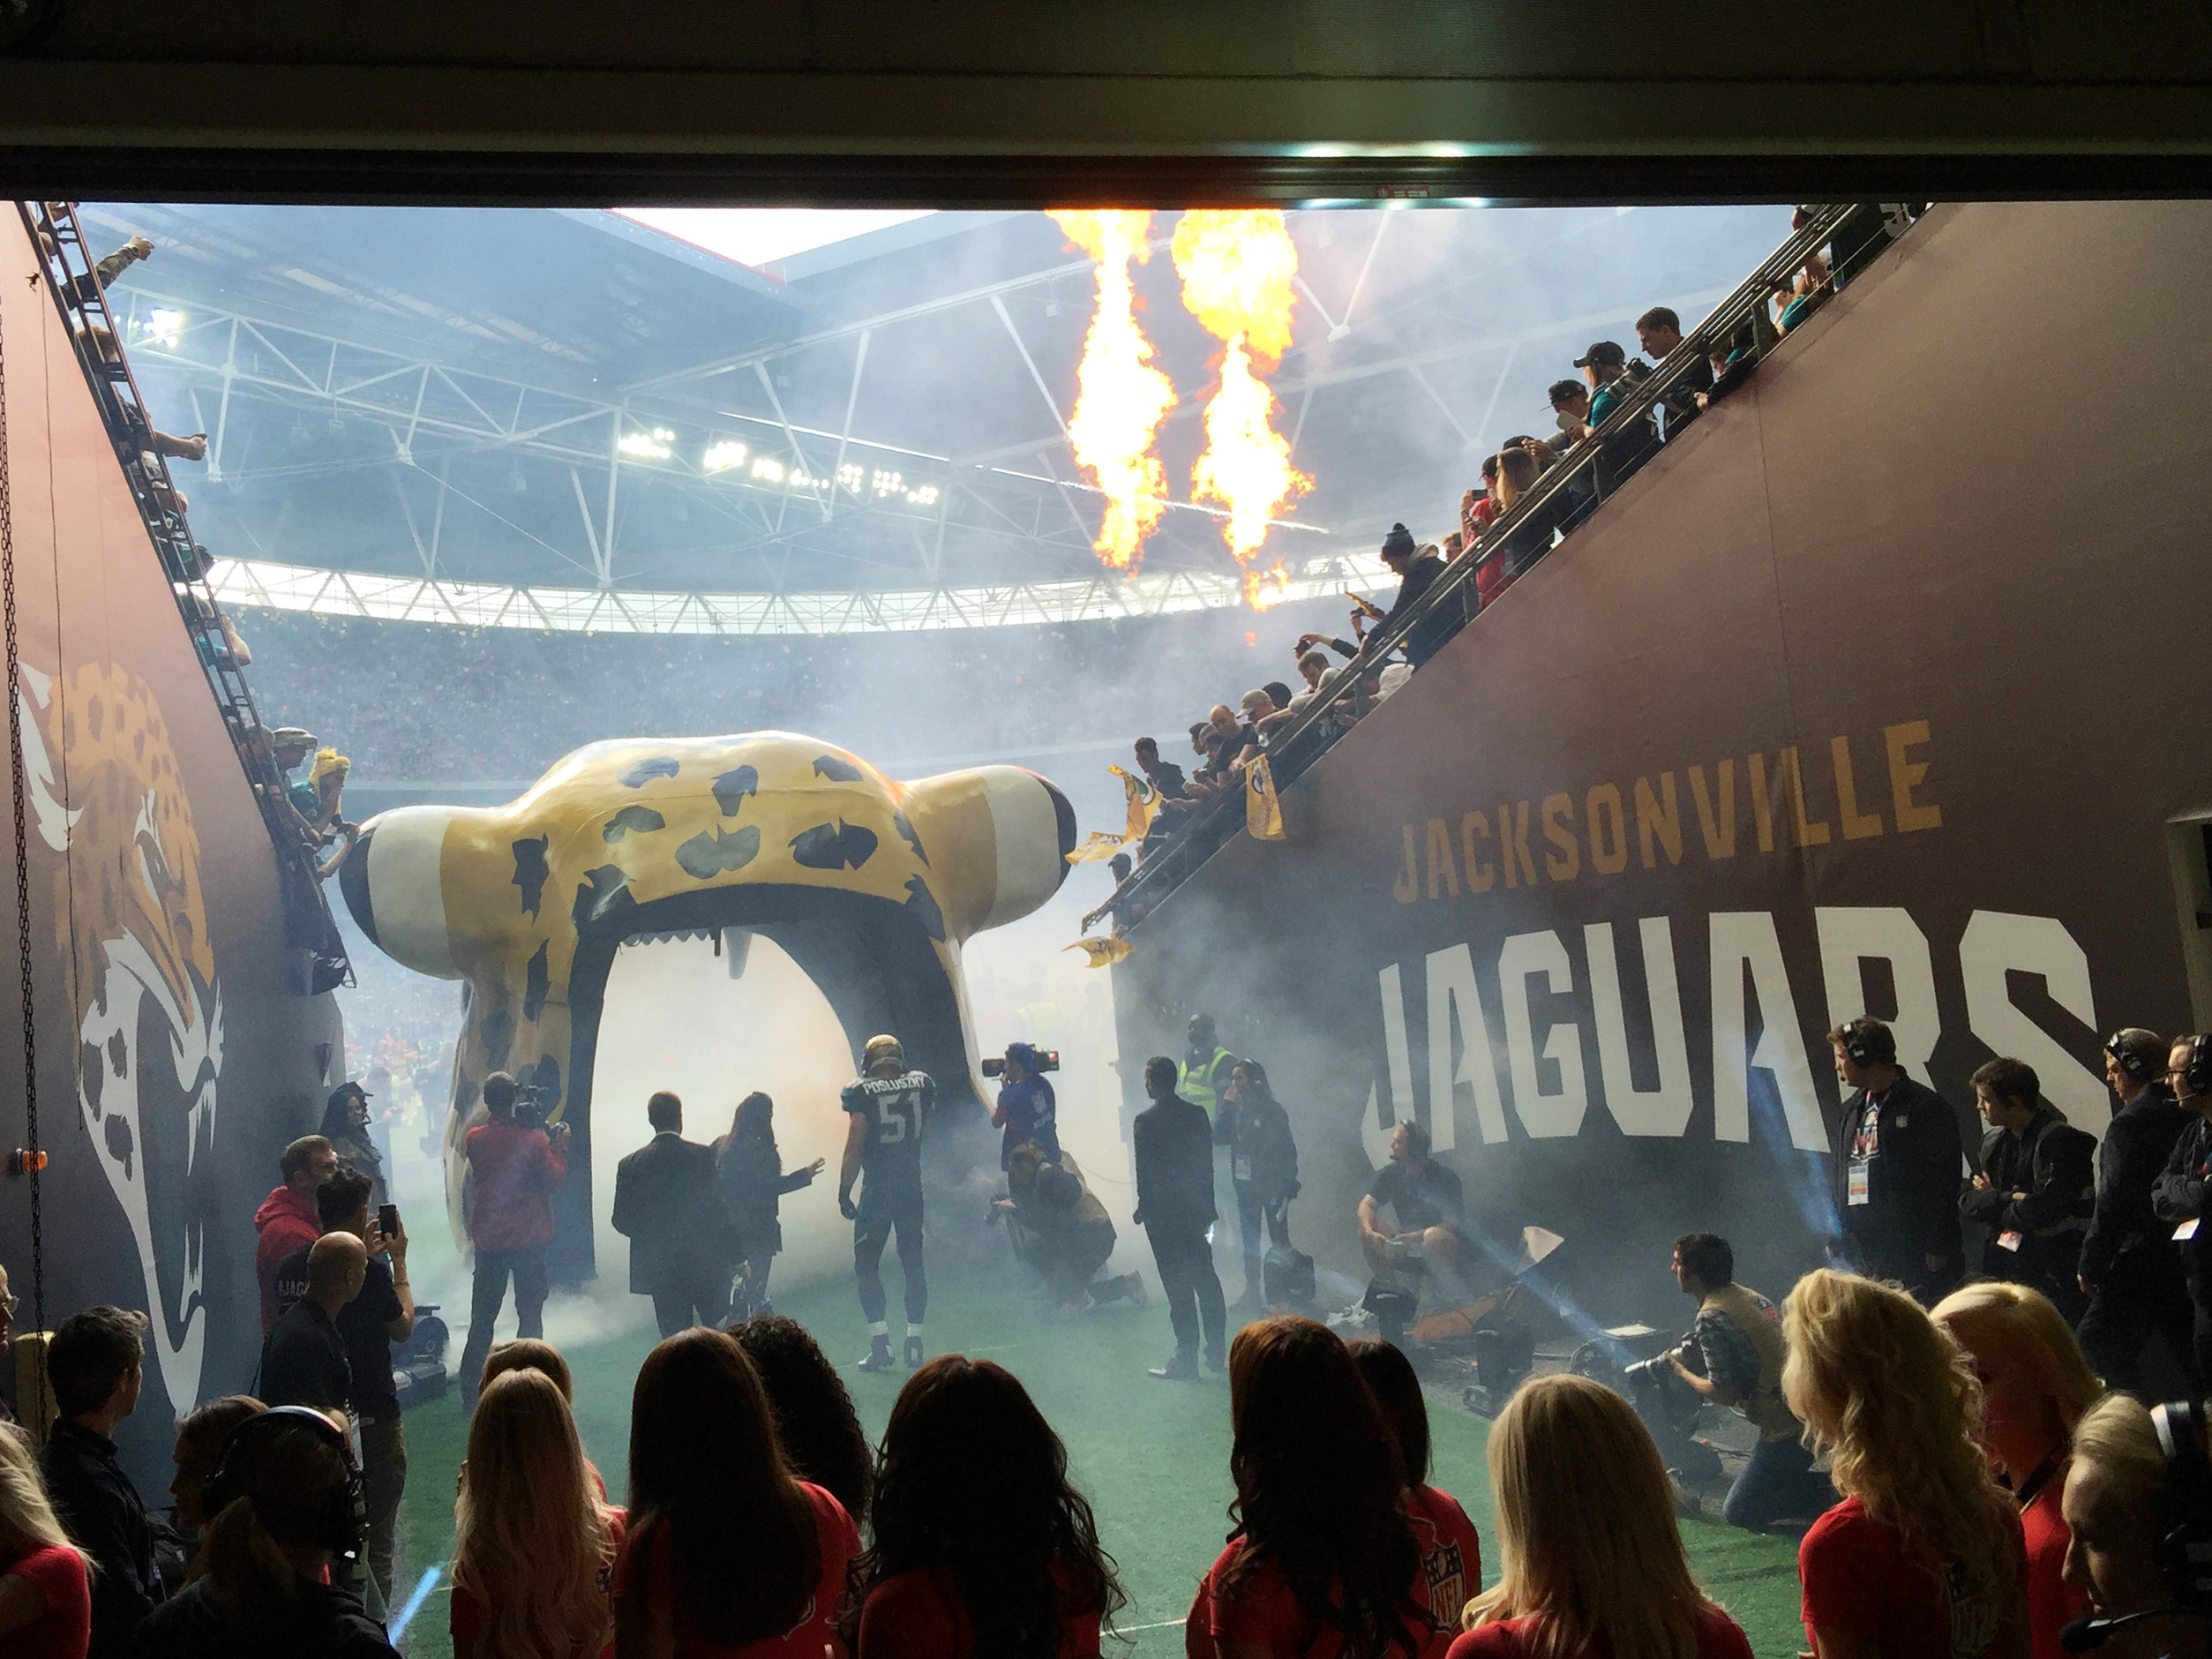 The Jacksonville Jaguars' middle linebacker, Paul Posluszny, enters Wembley Stadium as a crowd of nearly 84,000 cheers. The Jaguars are the closest thing to a hometown American football team in London. Frank Langfitt/NPR